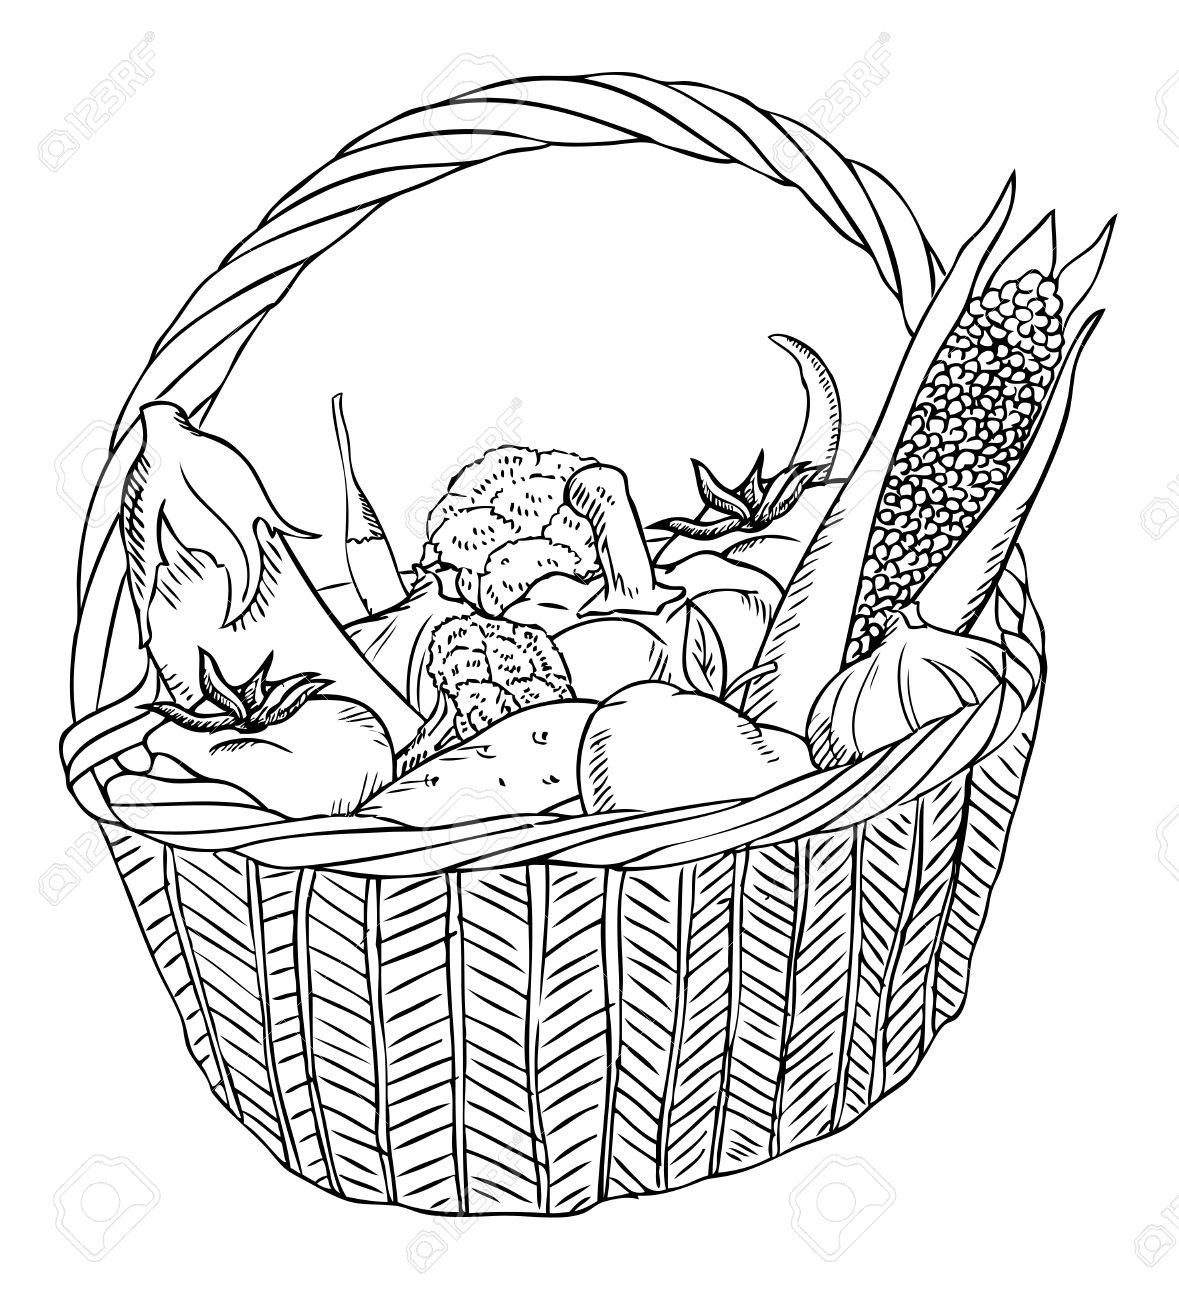 Basket Of Fruit Drawing